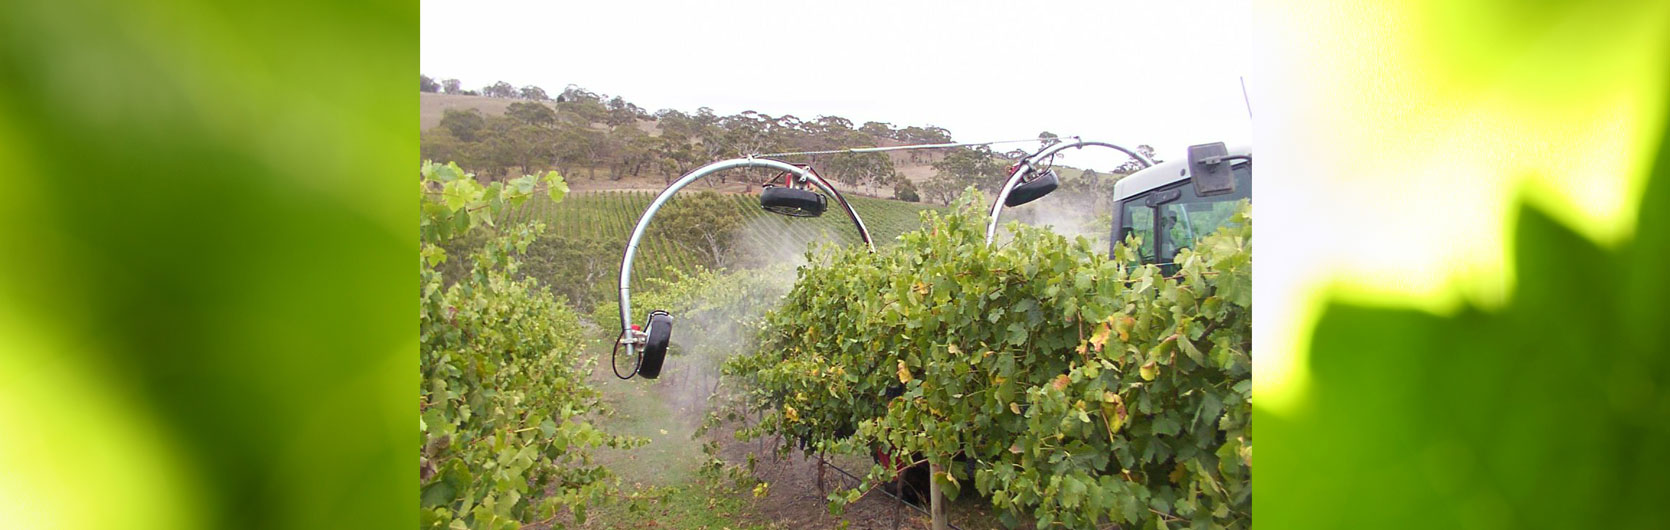 hero_4000L-Tree-Spray-System-1-banner.jpg